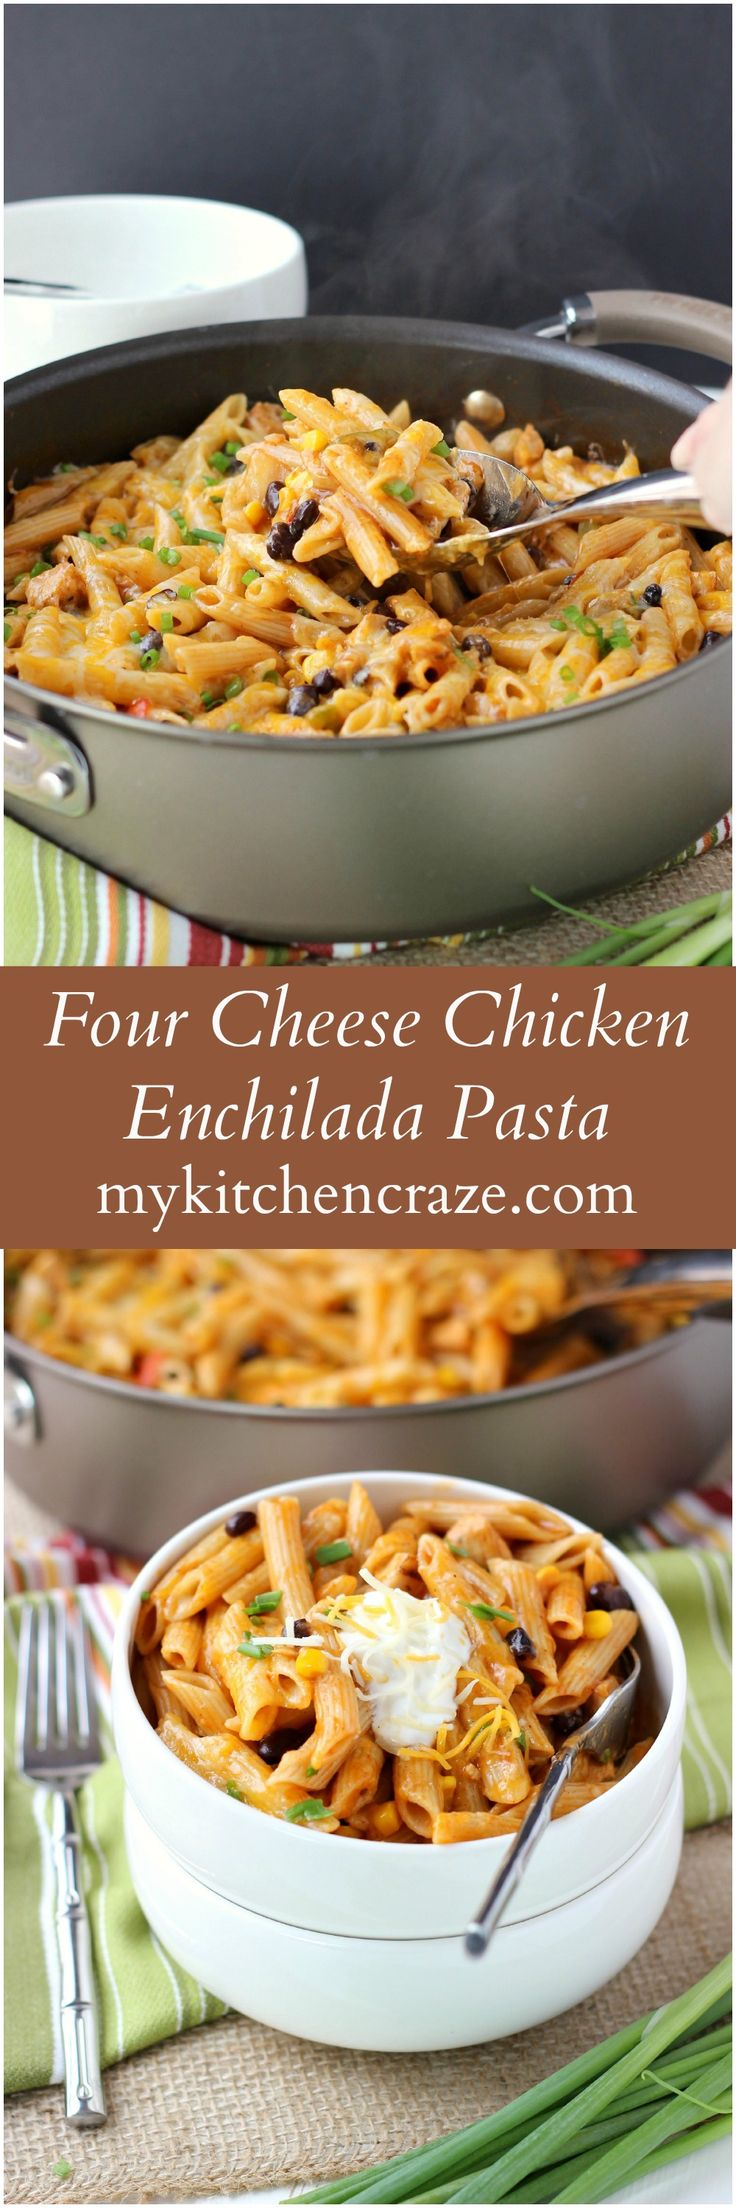 Ad #EverydayEffortless ~ Four Cheese Chicken Enchilada Pasta ~ www.mykitchencraze.com ~ Have an easy and delicious meal on your table within 10 minutes. Quick, easy and a family favorite!